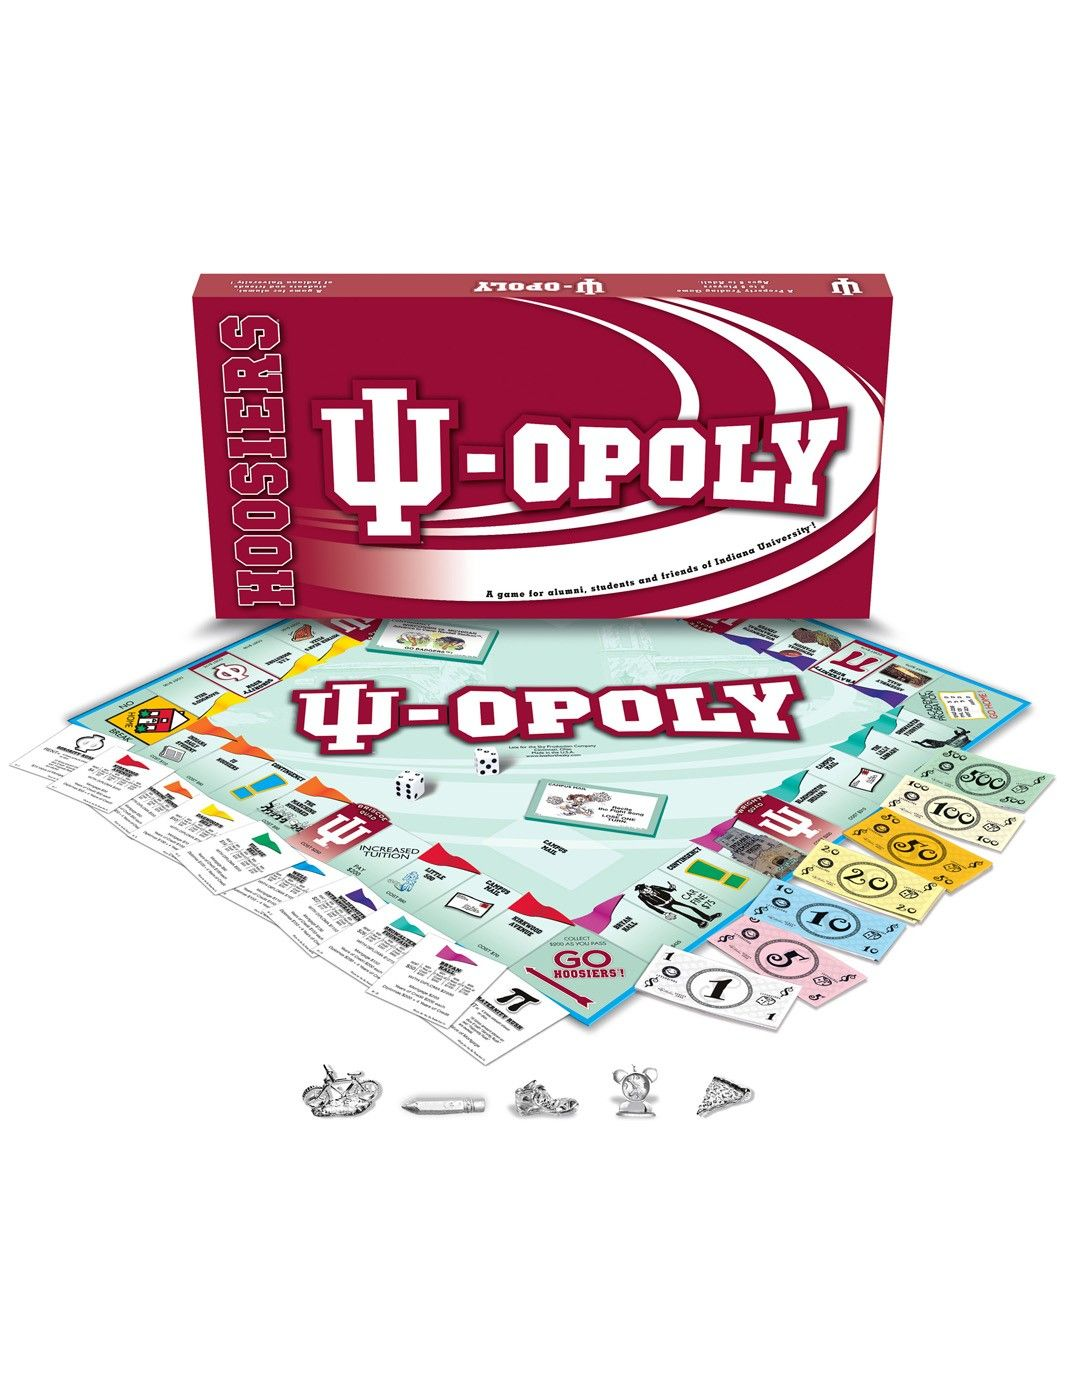 IU-OPOLY - Accessories - Indiana - Big 10 | Scout.com